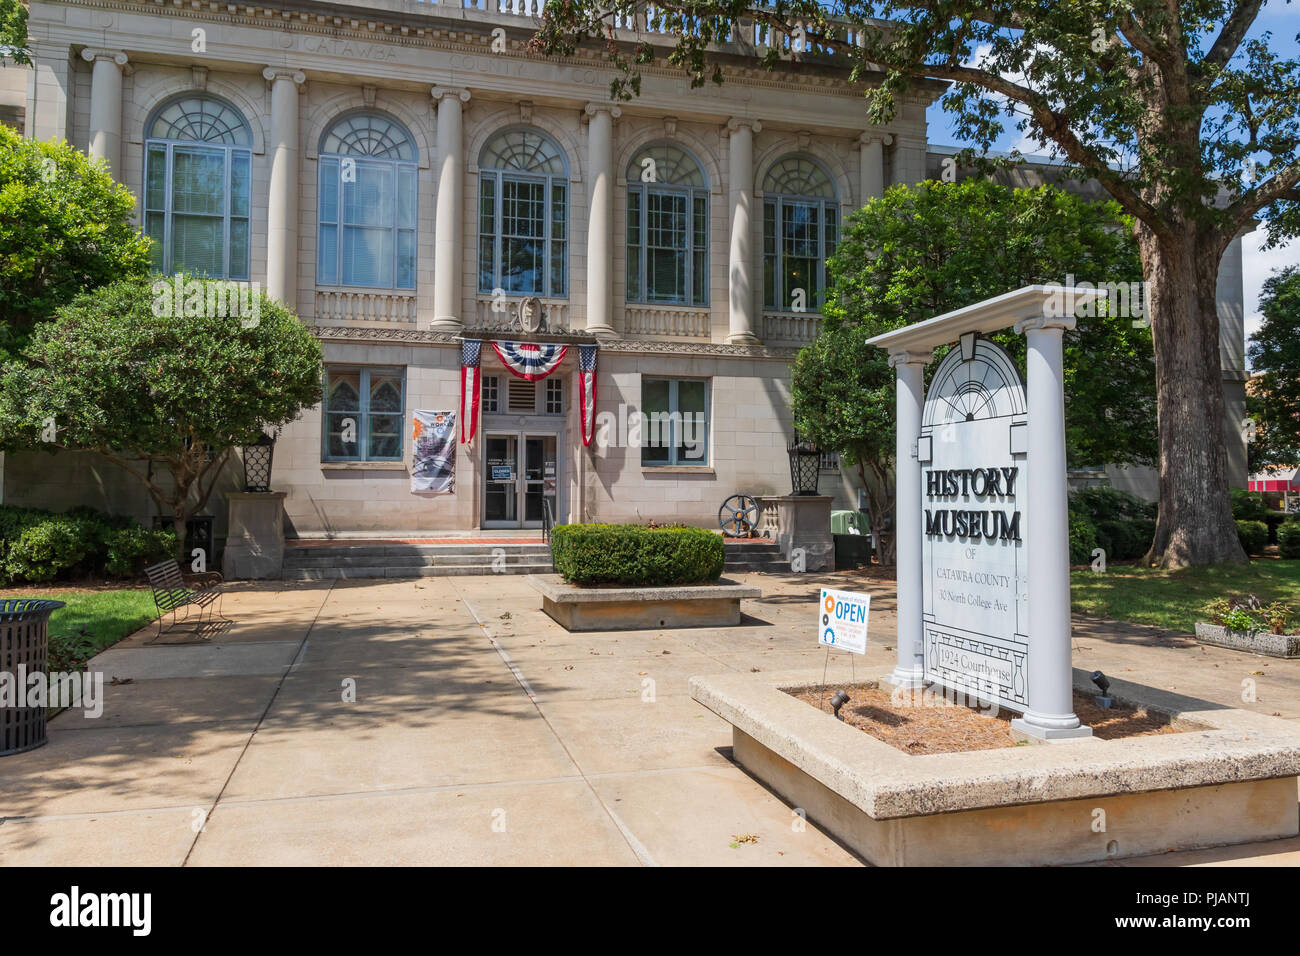 Newton, NC, USA-9/2/18:  The old Catawba County Courthouse, built in 1924, now functions as a history museum. Stock Photo